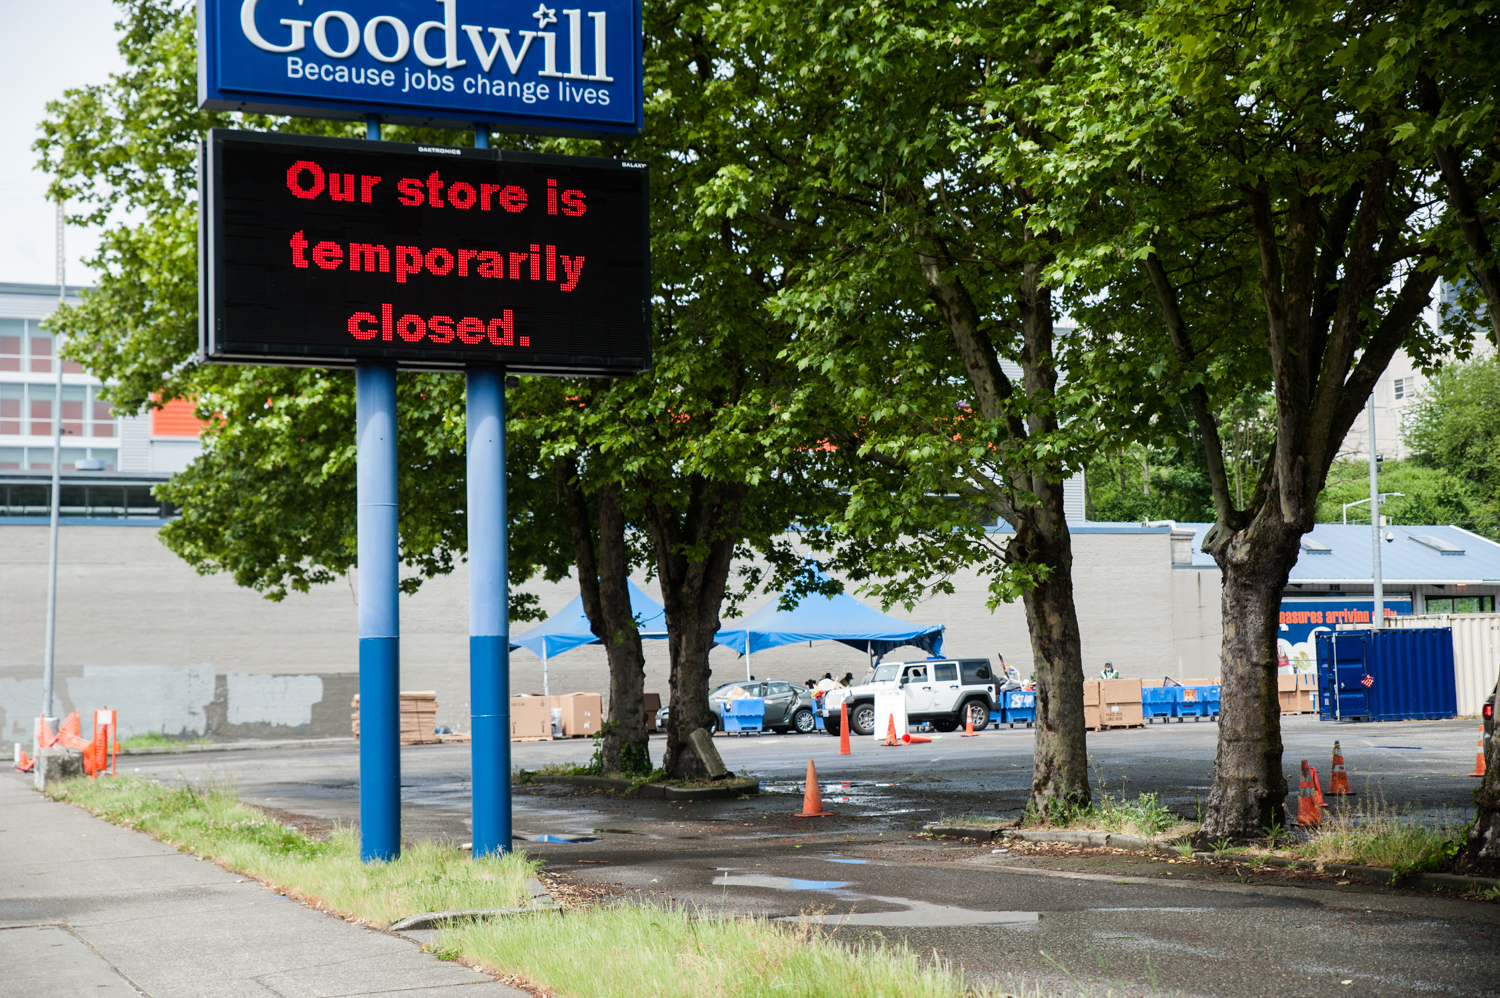 "Looks like folks are cleaning house! Since the reopening of several locations on May 3, Goodwill stores (especially this one, on Dearborn) have seen huge lines circling the block to make donations. A rep from Goodwill said donors have been waiting upwards of 90 minutes to drop things off - mostly clothing, lots of toys and small appliances. When received, items are disinfected and then staged for a quarantine period. More info on donation protocols{&nbsp;}<a  href=""https://seattlegoodwill.org/locations?gclid=Cj0KCQjwzZj2BRDVARIsABs3l9Iue-5i7CCG89J-j3tk4A3T-ouBh7C5yrRvh5McBMvRVoclRKG482oaAgy3EALw_wcB"" target=""_blank"" title=""https://seattlegoodwill.org/locations?gclid=Cj0KCQjwzZj2BRDVARIsABs3l9Iue-5i7CCG89J-j3tk4A3T-ouBh7C5yrRvh5McBMvRVoclRKG482oaAgy3EALw_wcB"">online</a>. (Image: Elizabeth Crook / Seattle Refined){&nbsp;}"